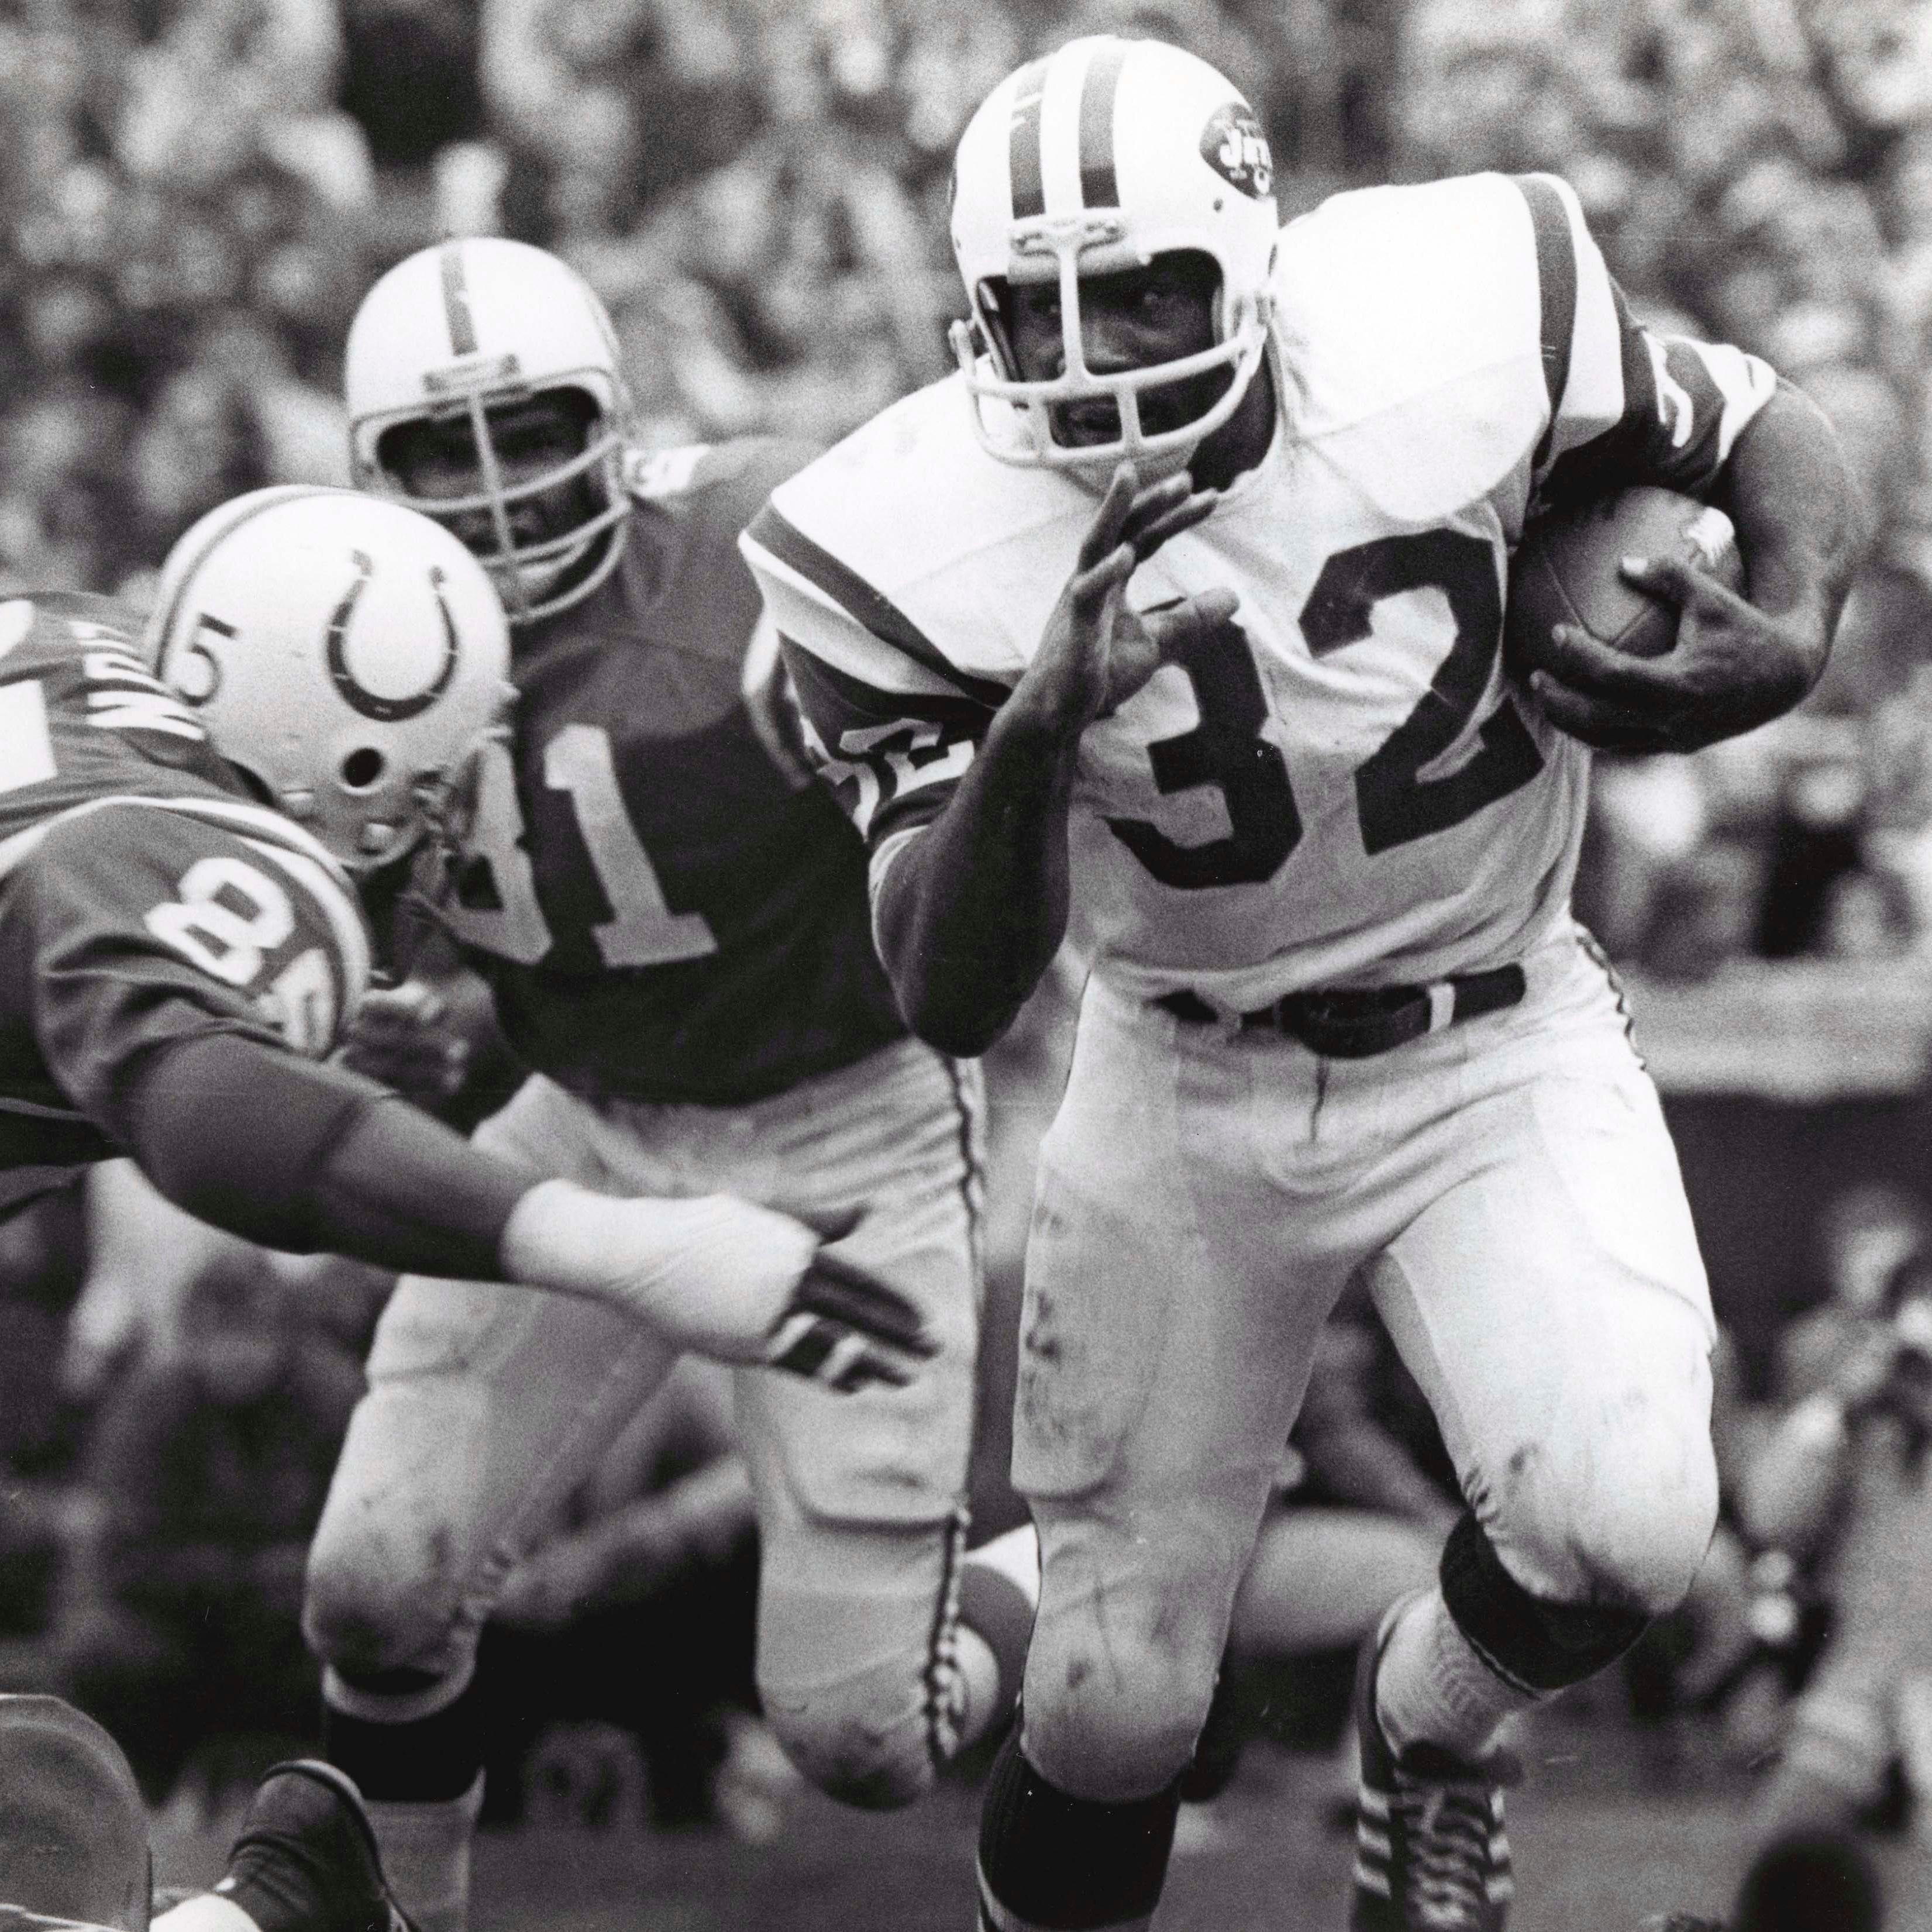 'Some special times': UMES Super Bowl III players celebrate Jets-Colts game 50 years later